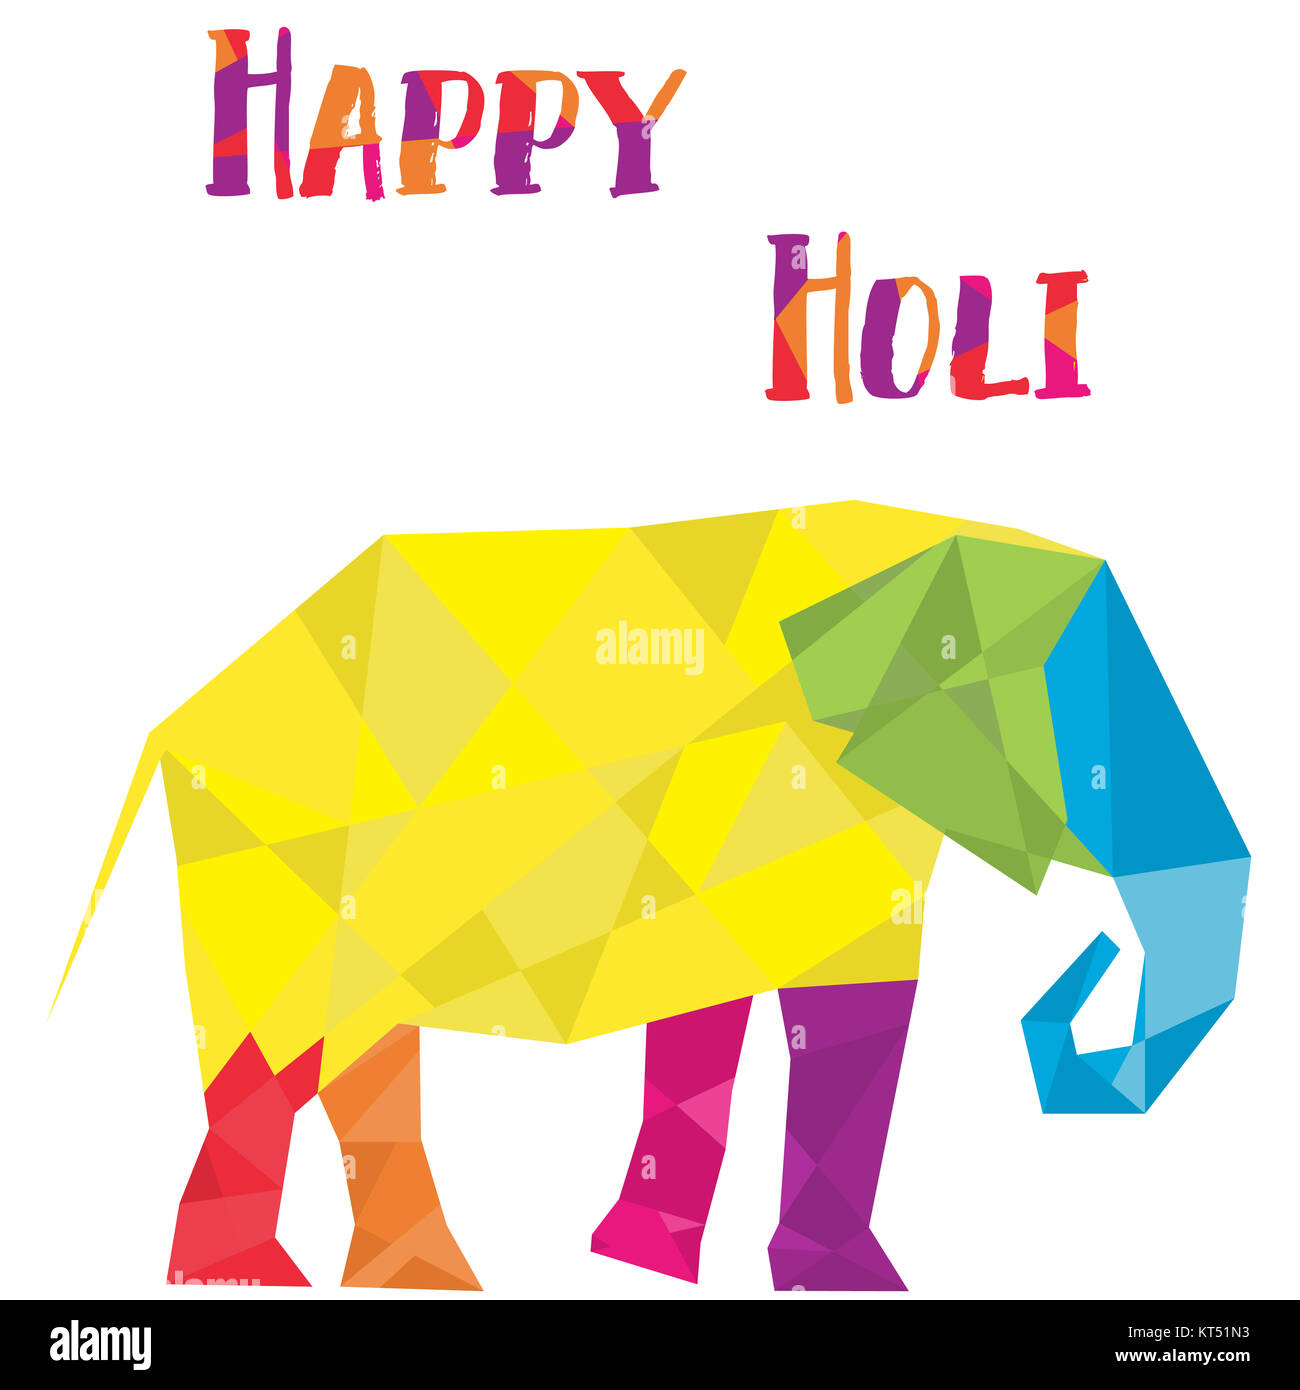 Polygon Gmbh elephant in polygon cubist style vector stock photo royalty free